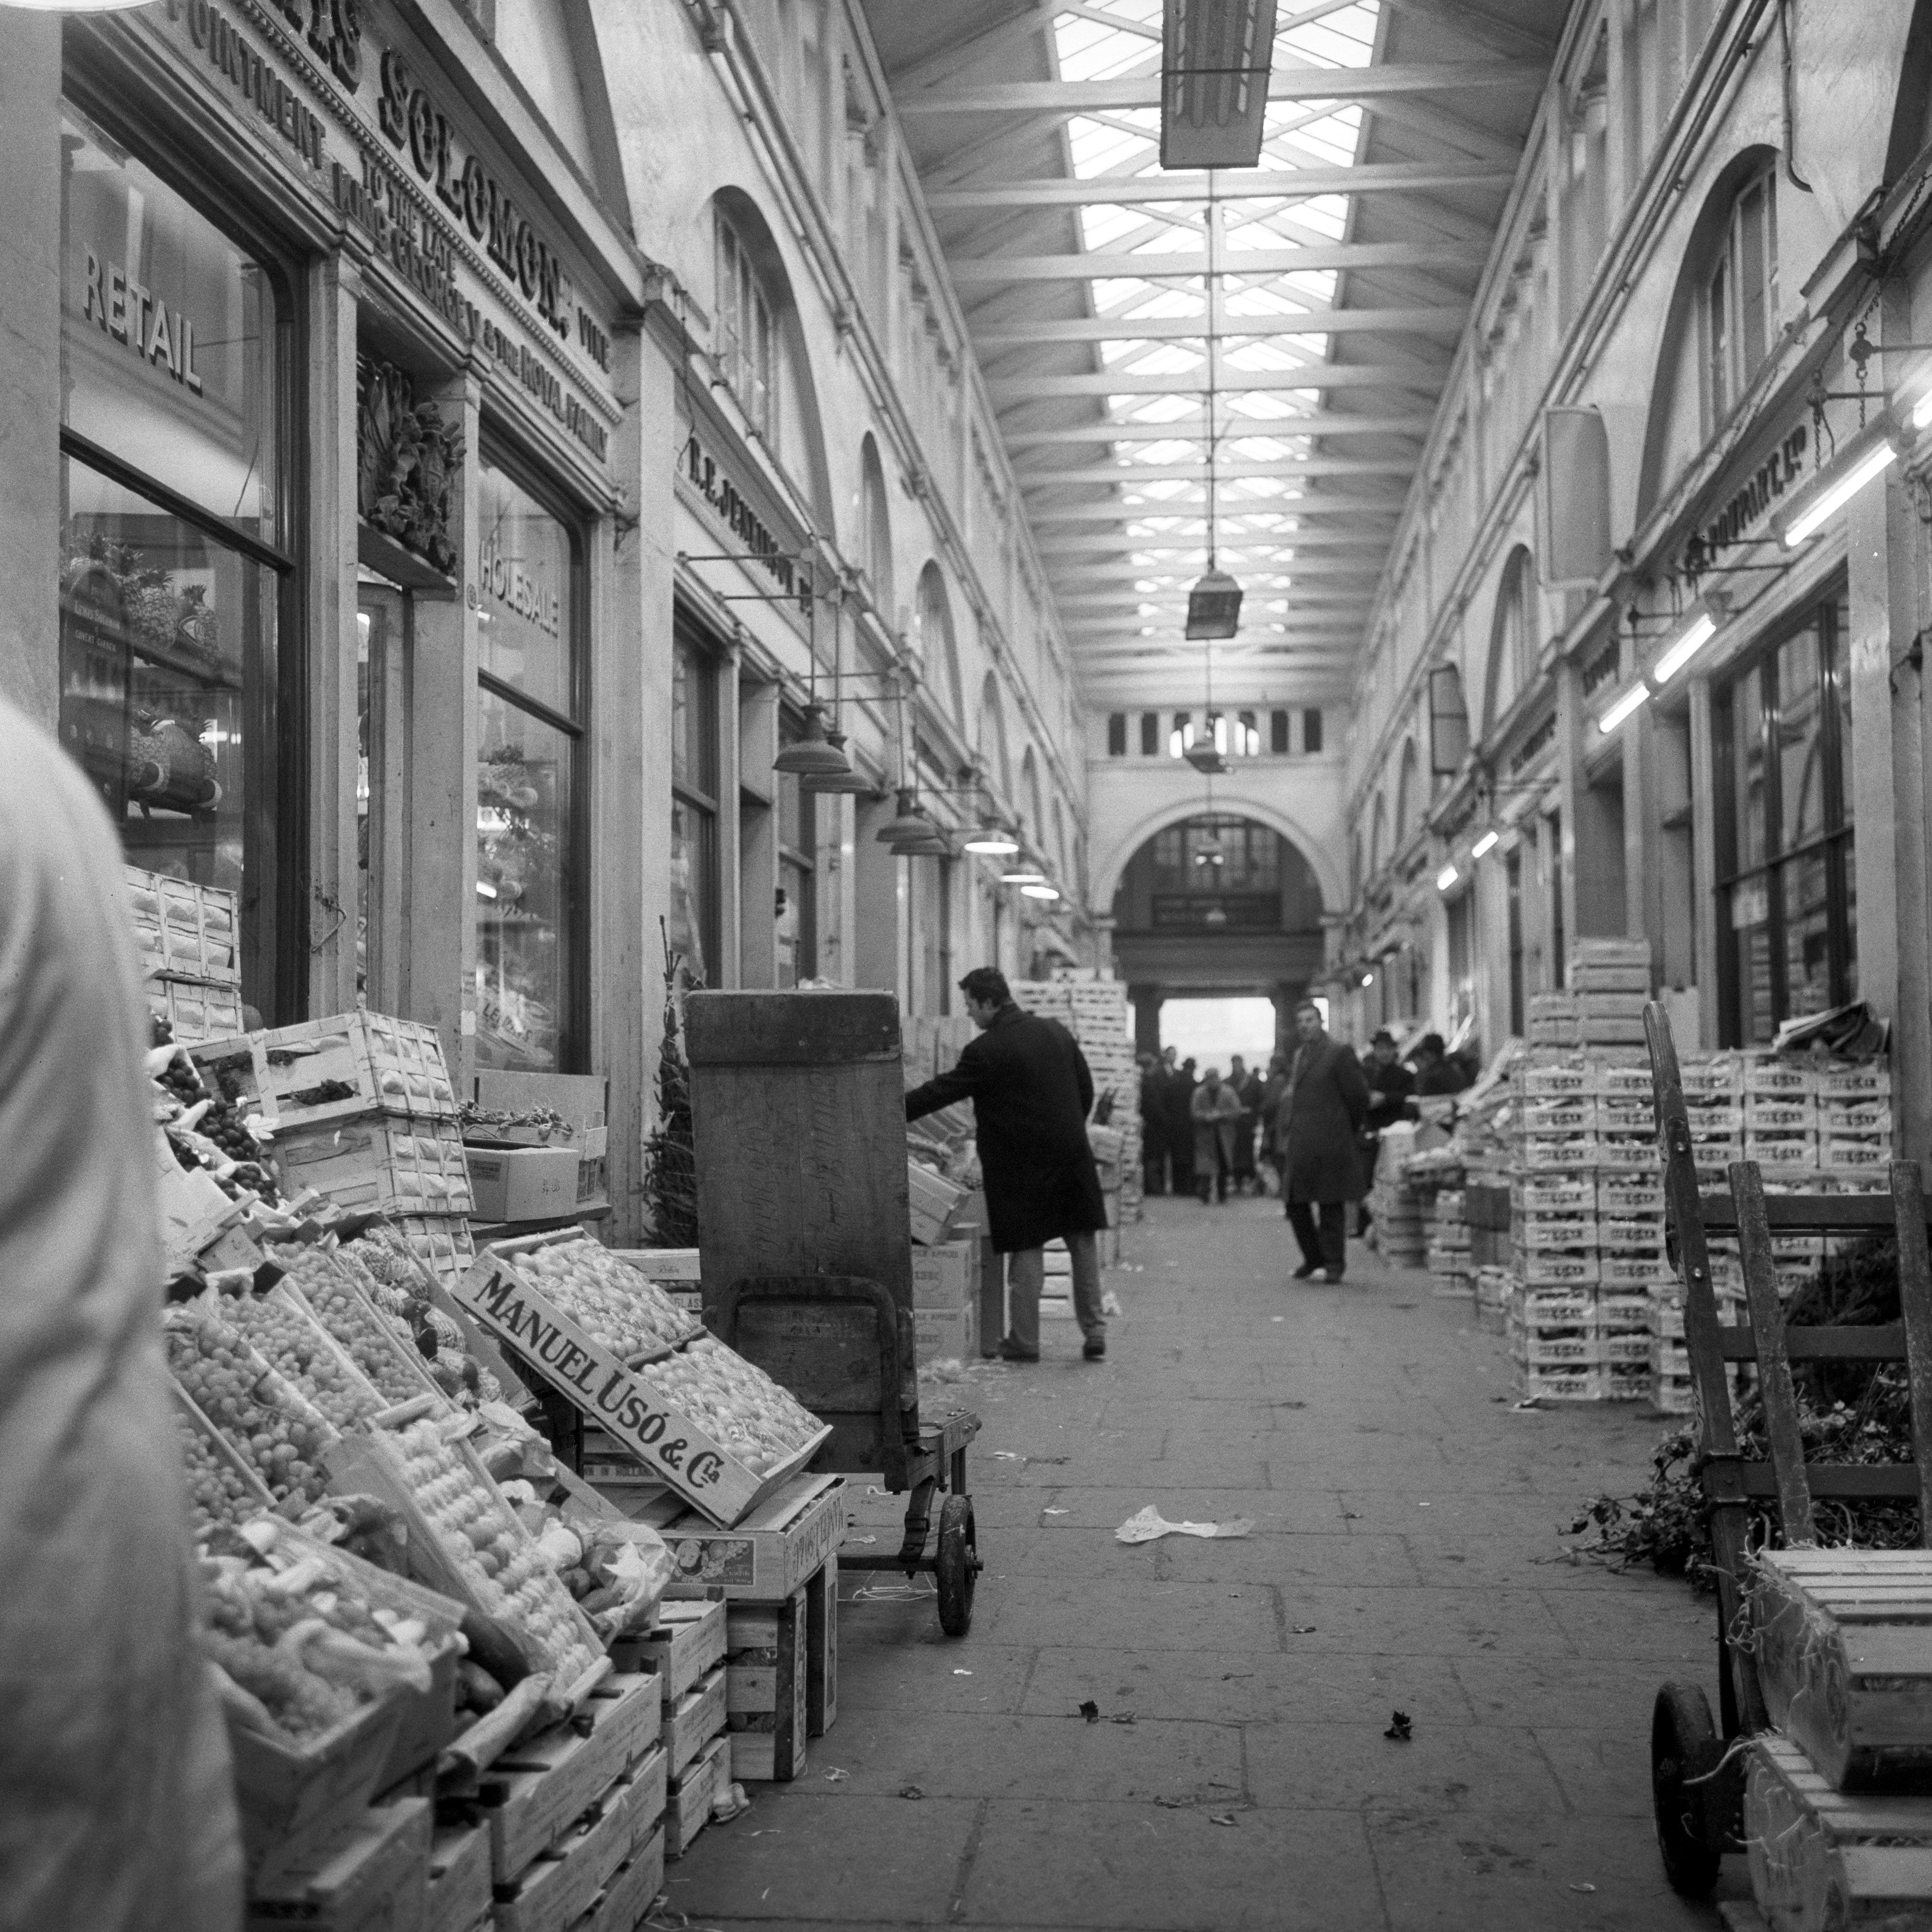 The Story of How Covent Garden was Nearly Razed to the